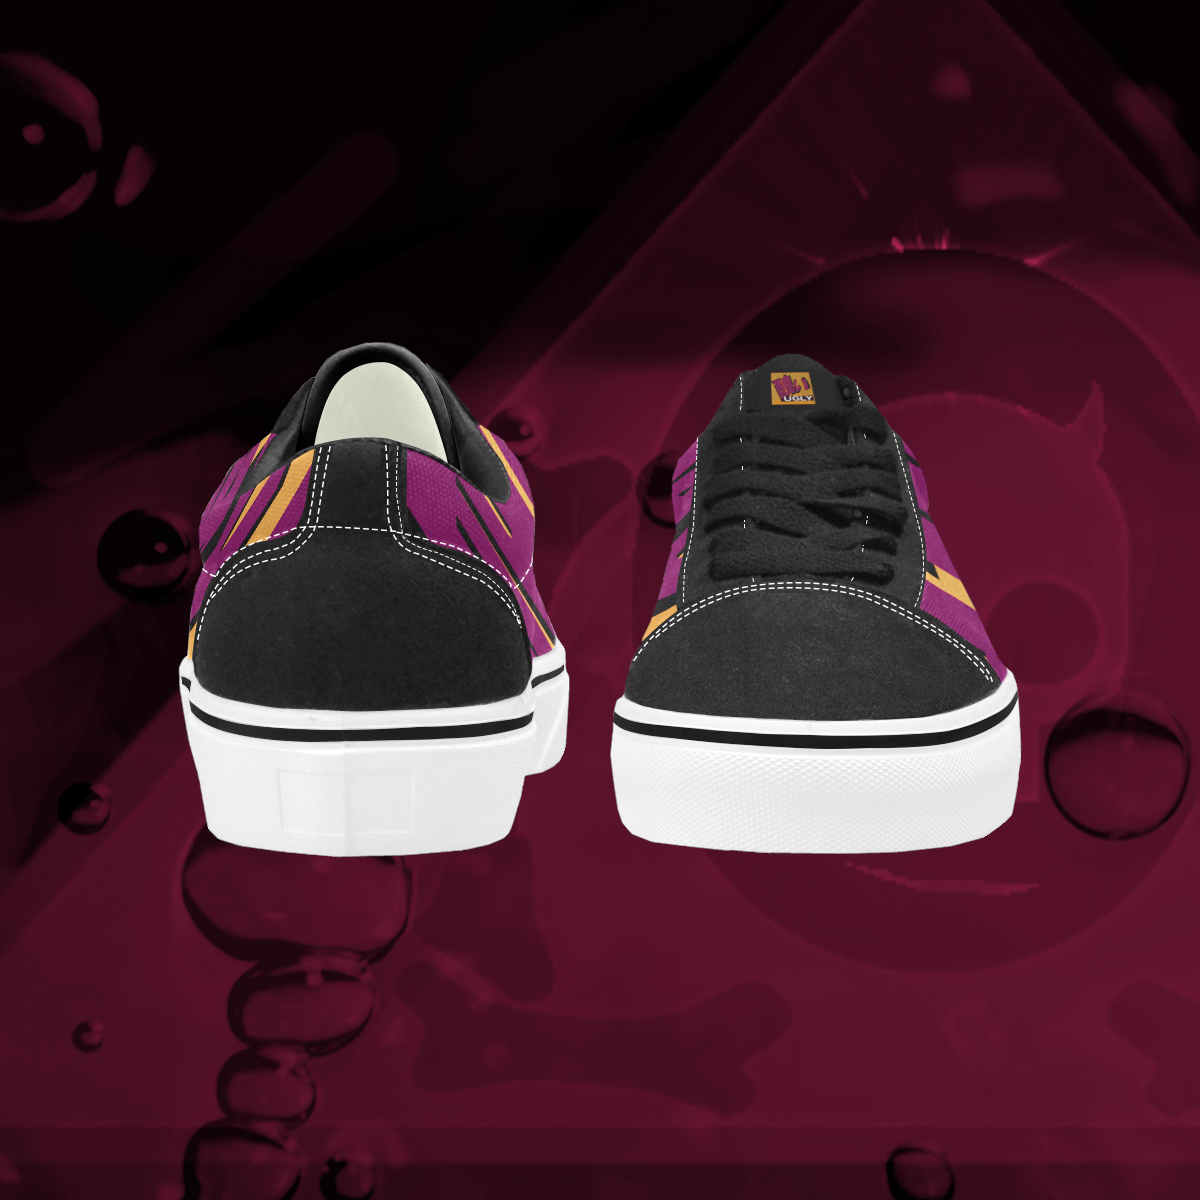 UGLY logo low top skate shoes The Lowest of Low Tang